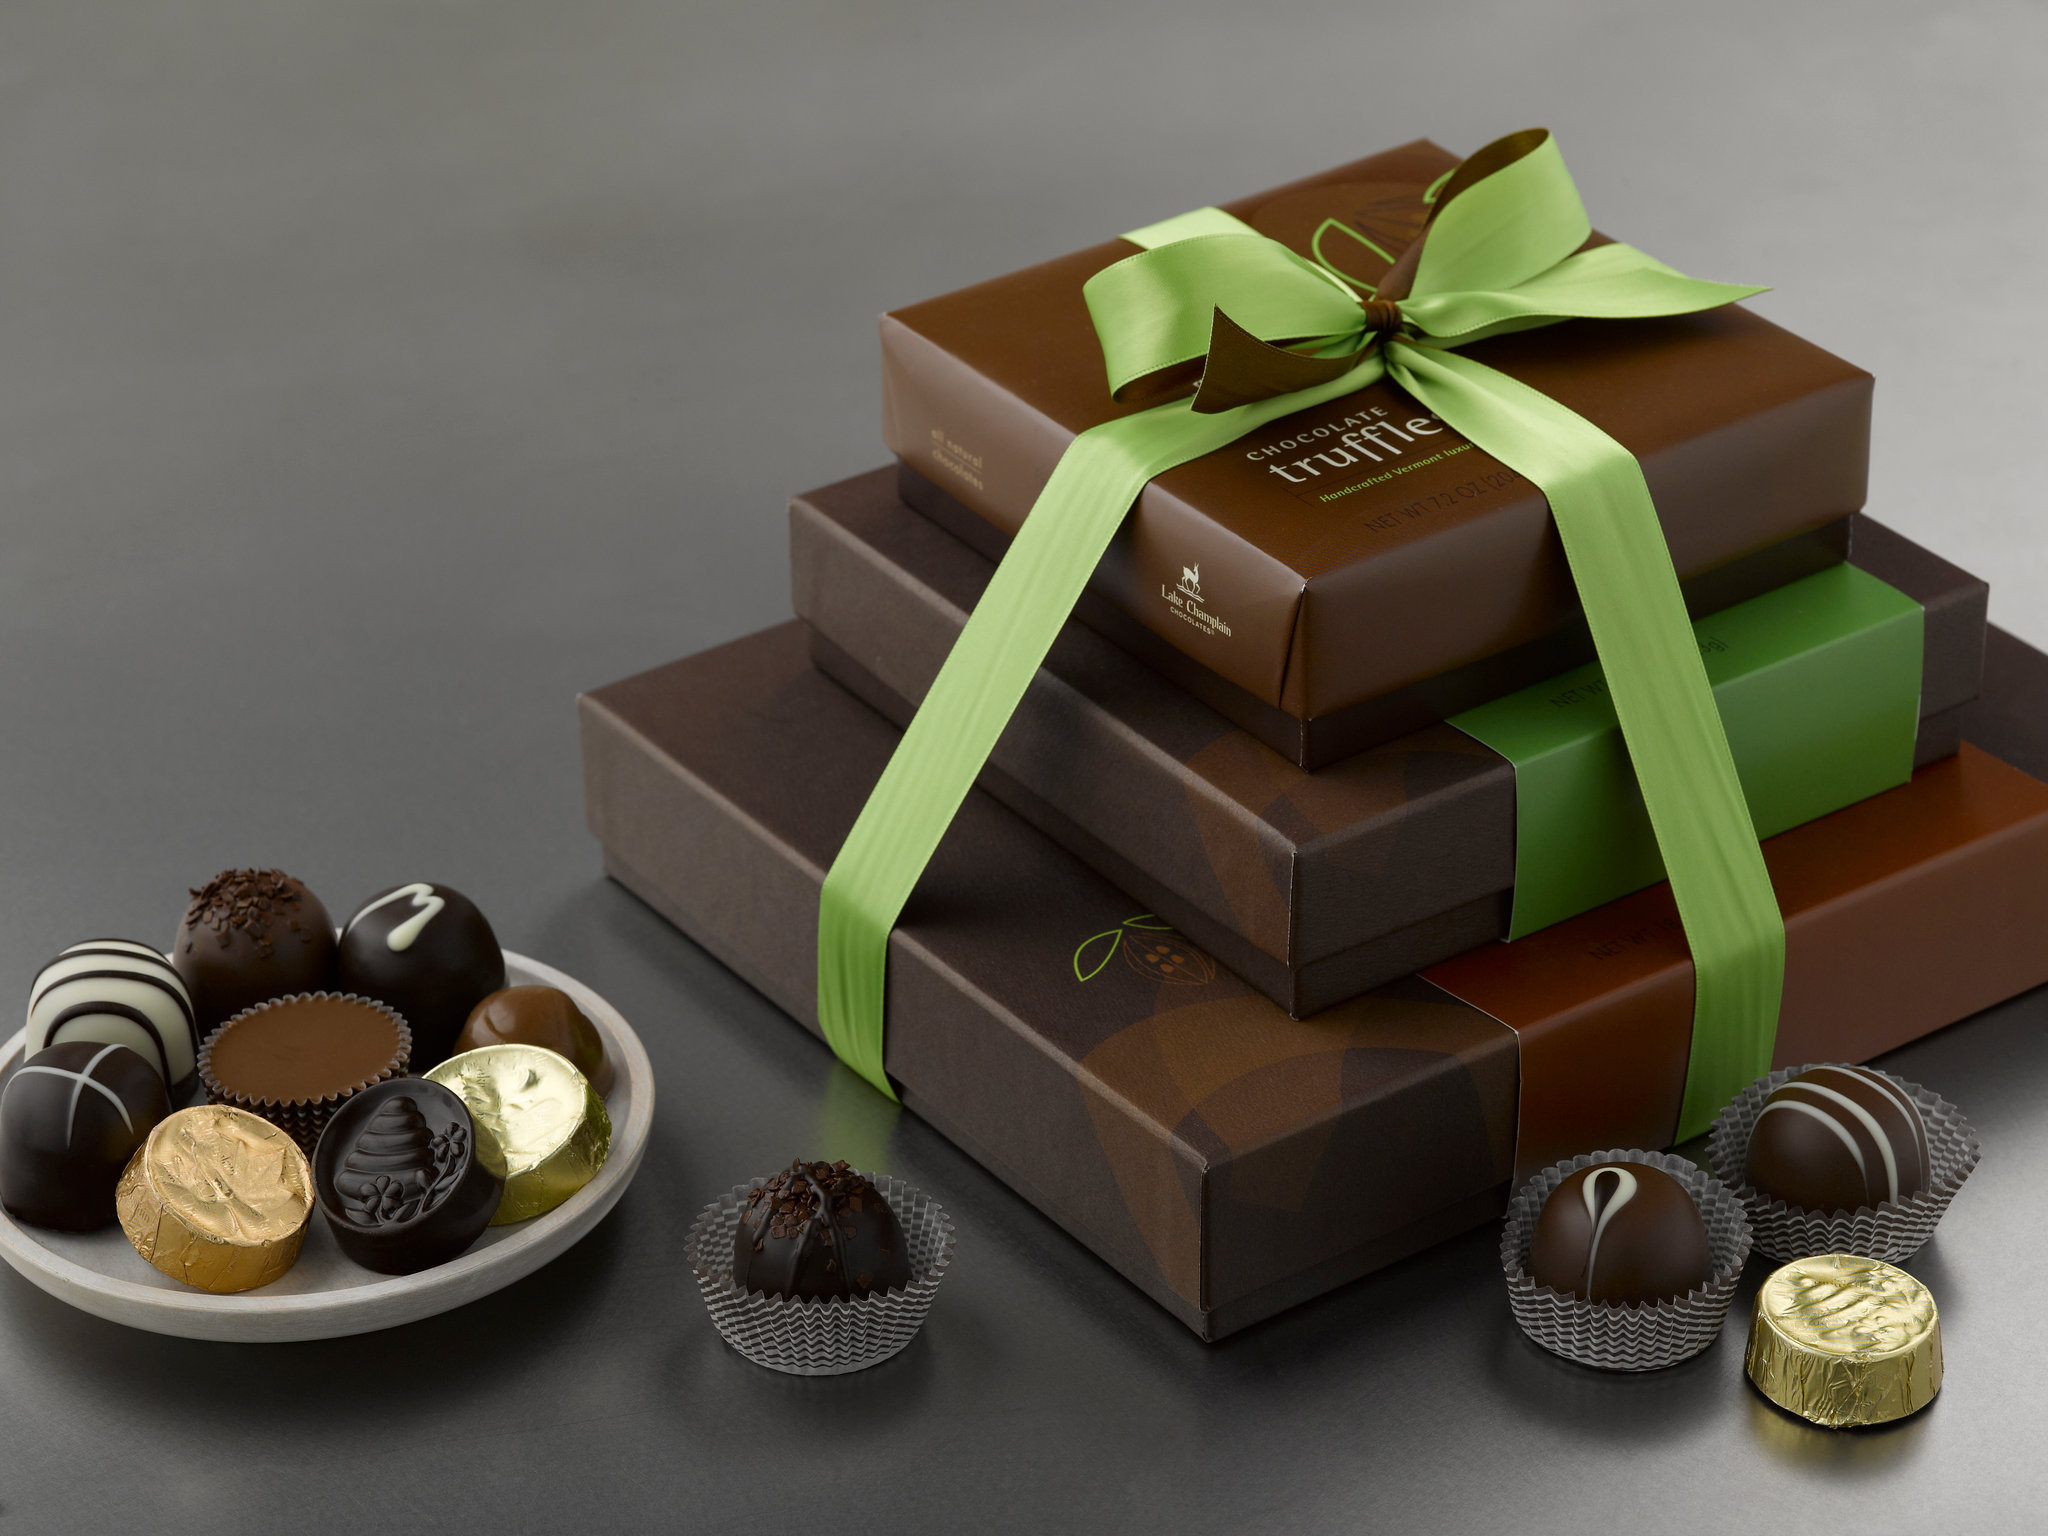 120625_MO_TowerChoc_HolidayCatalog.jpg